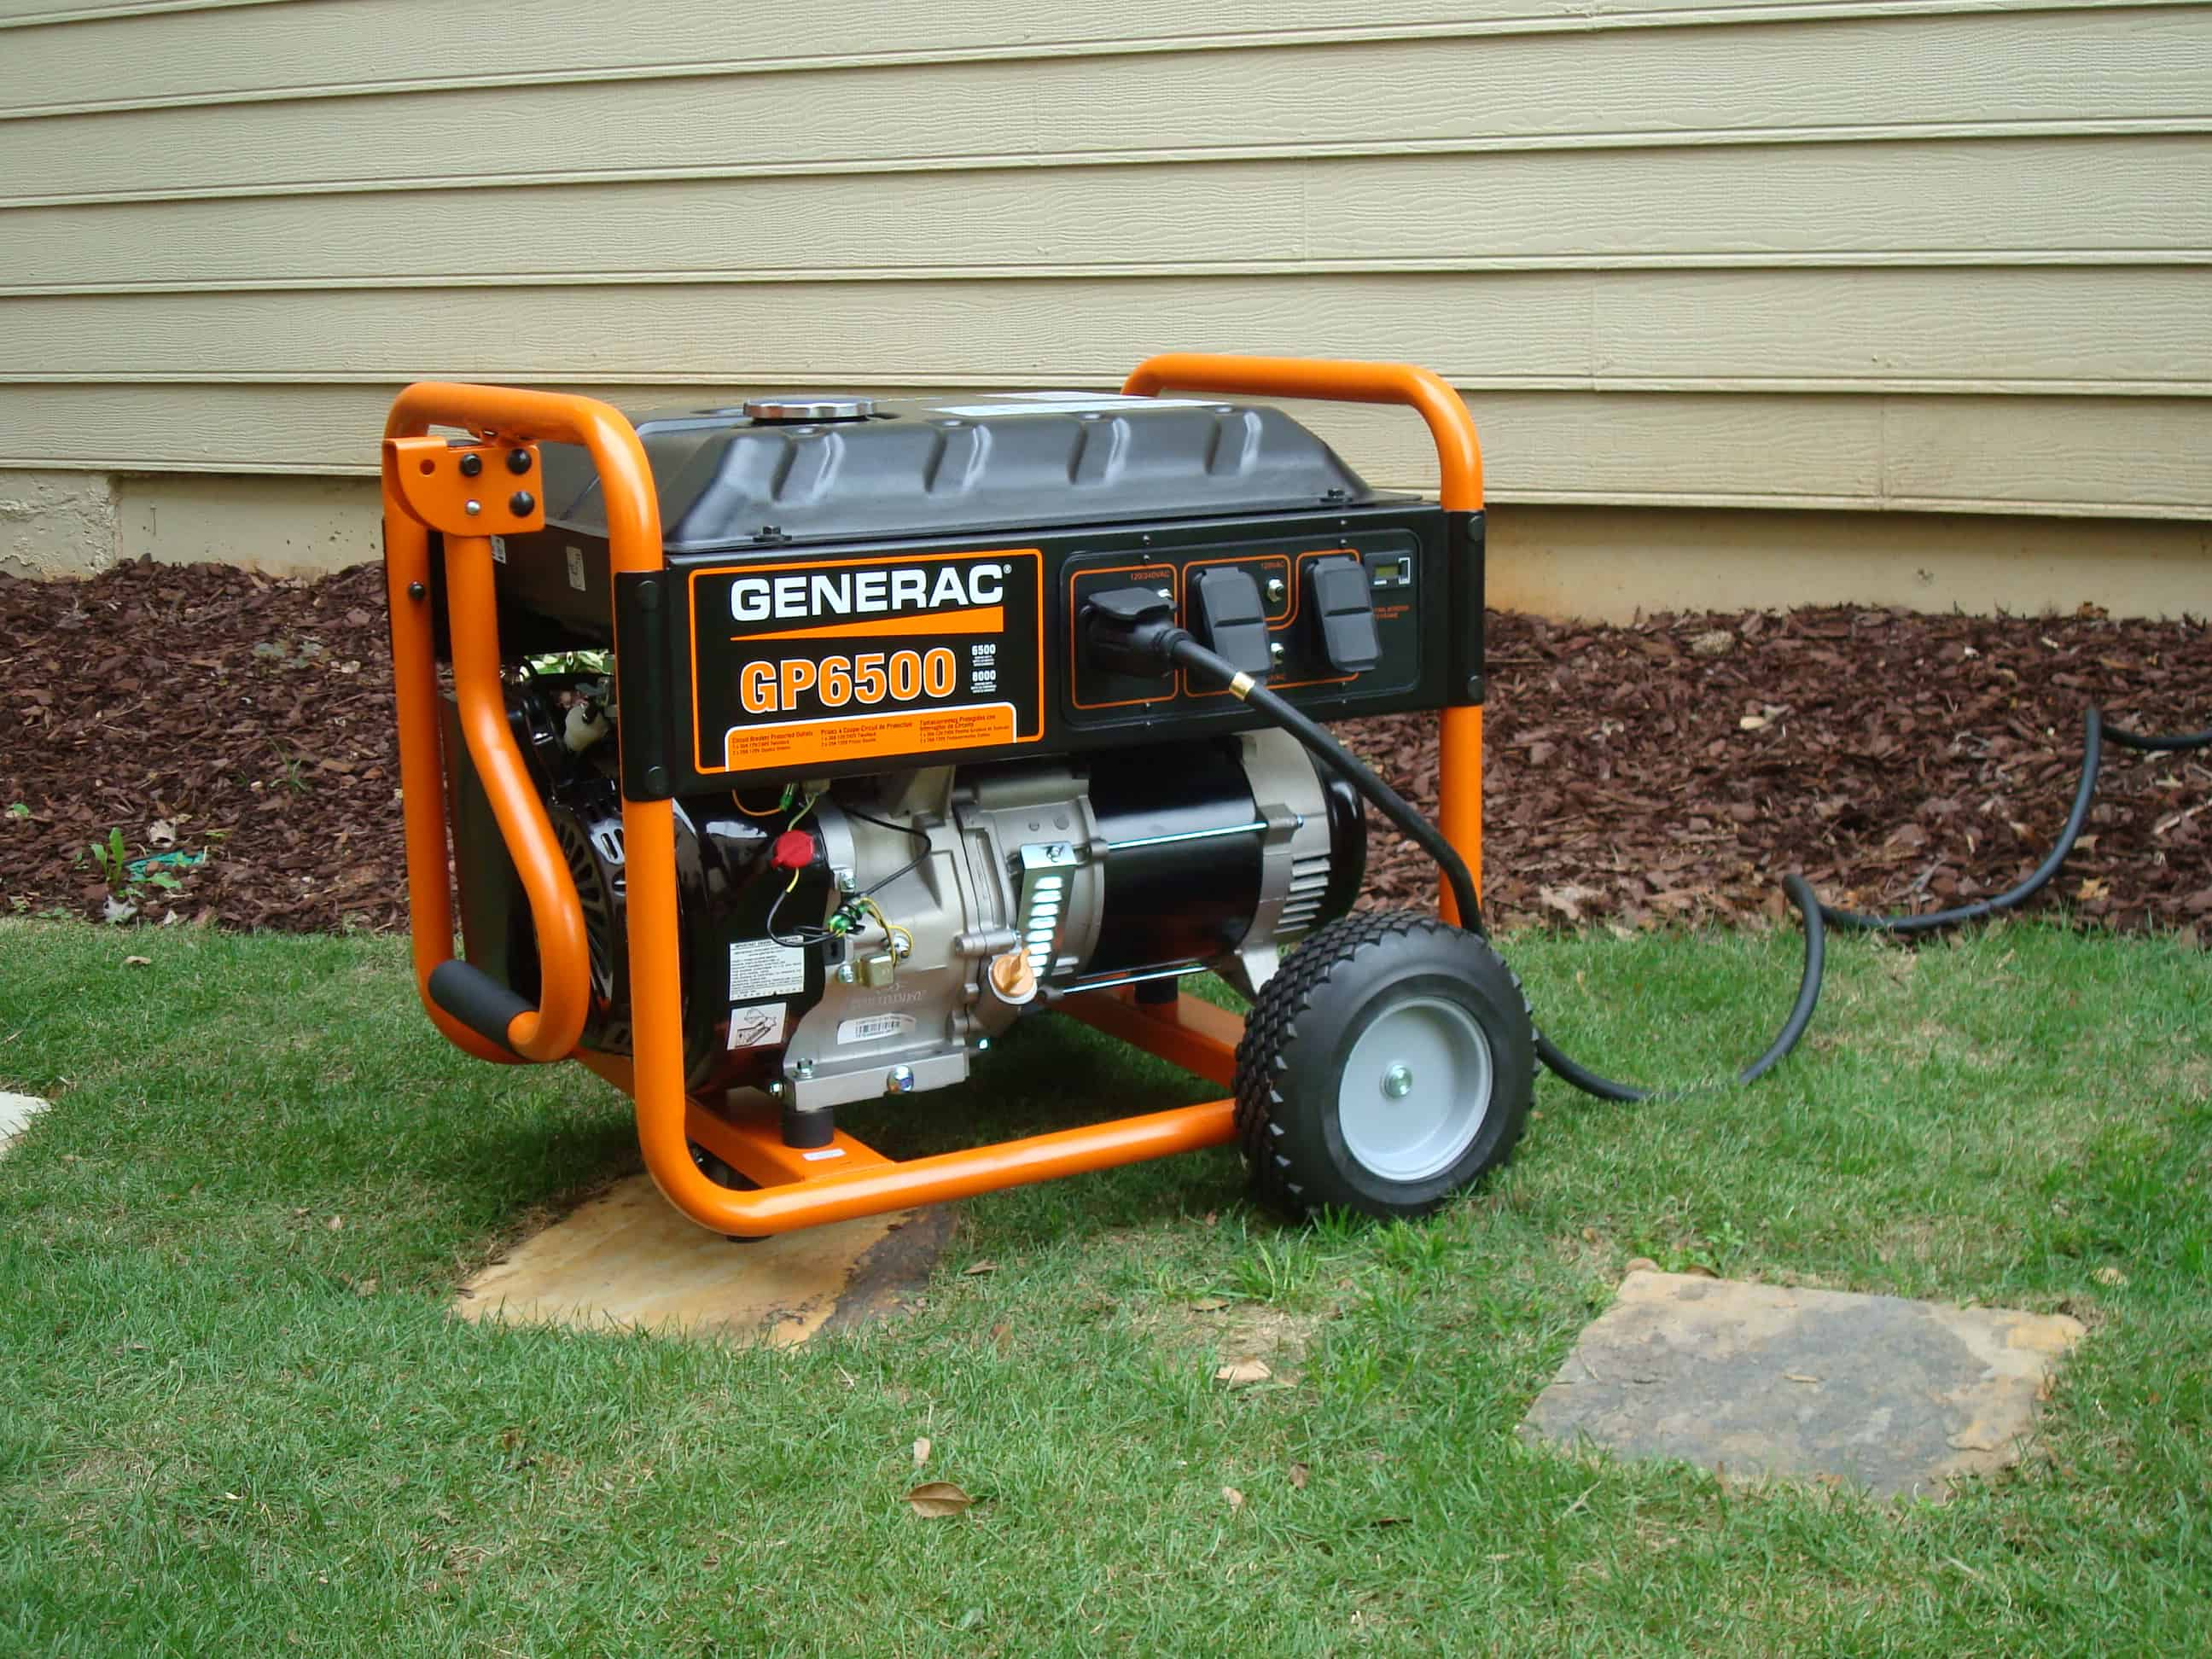 Safe Use of Electric Generators at Home and Away